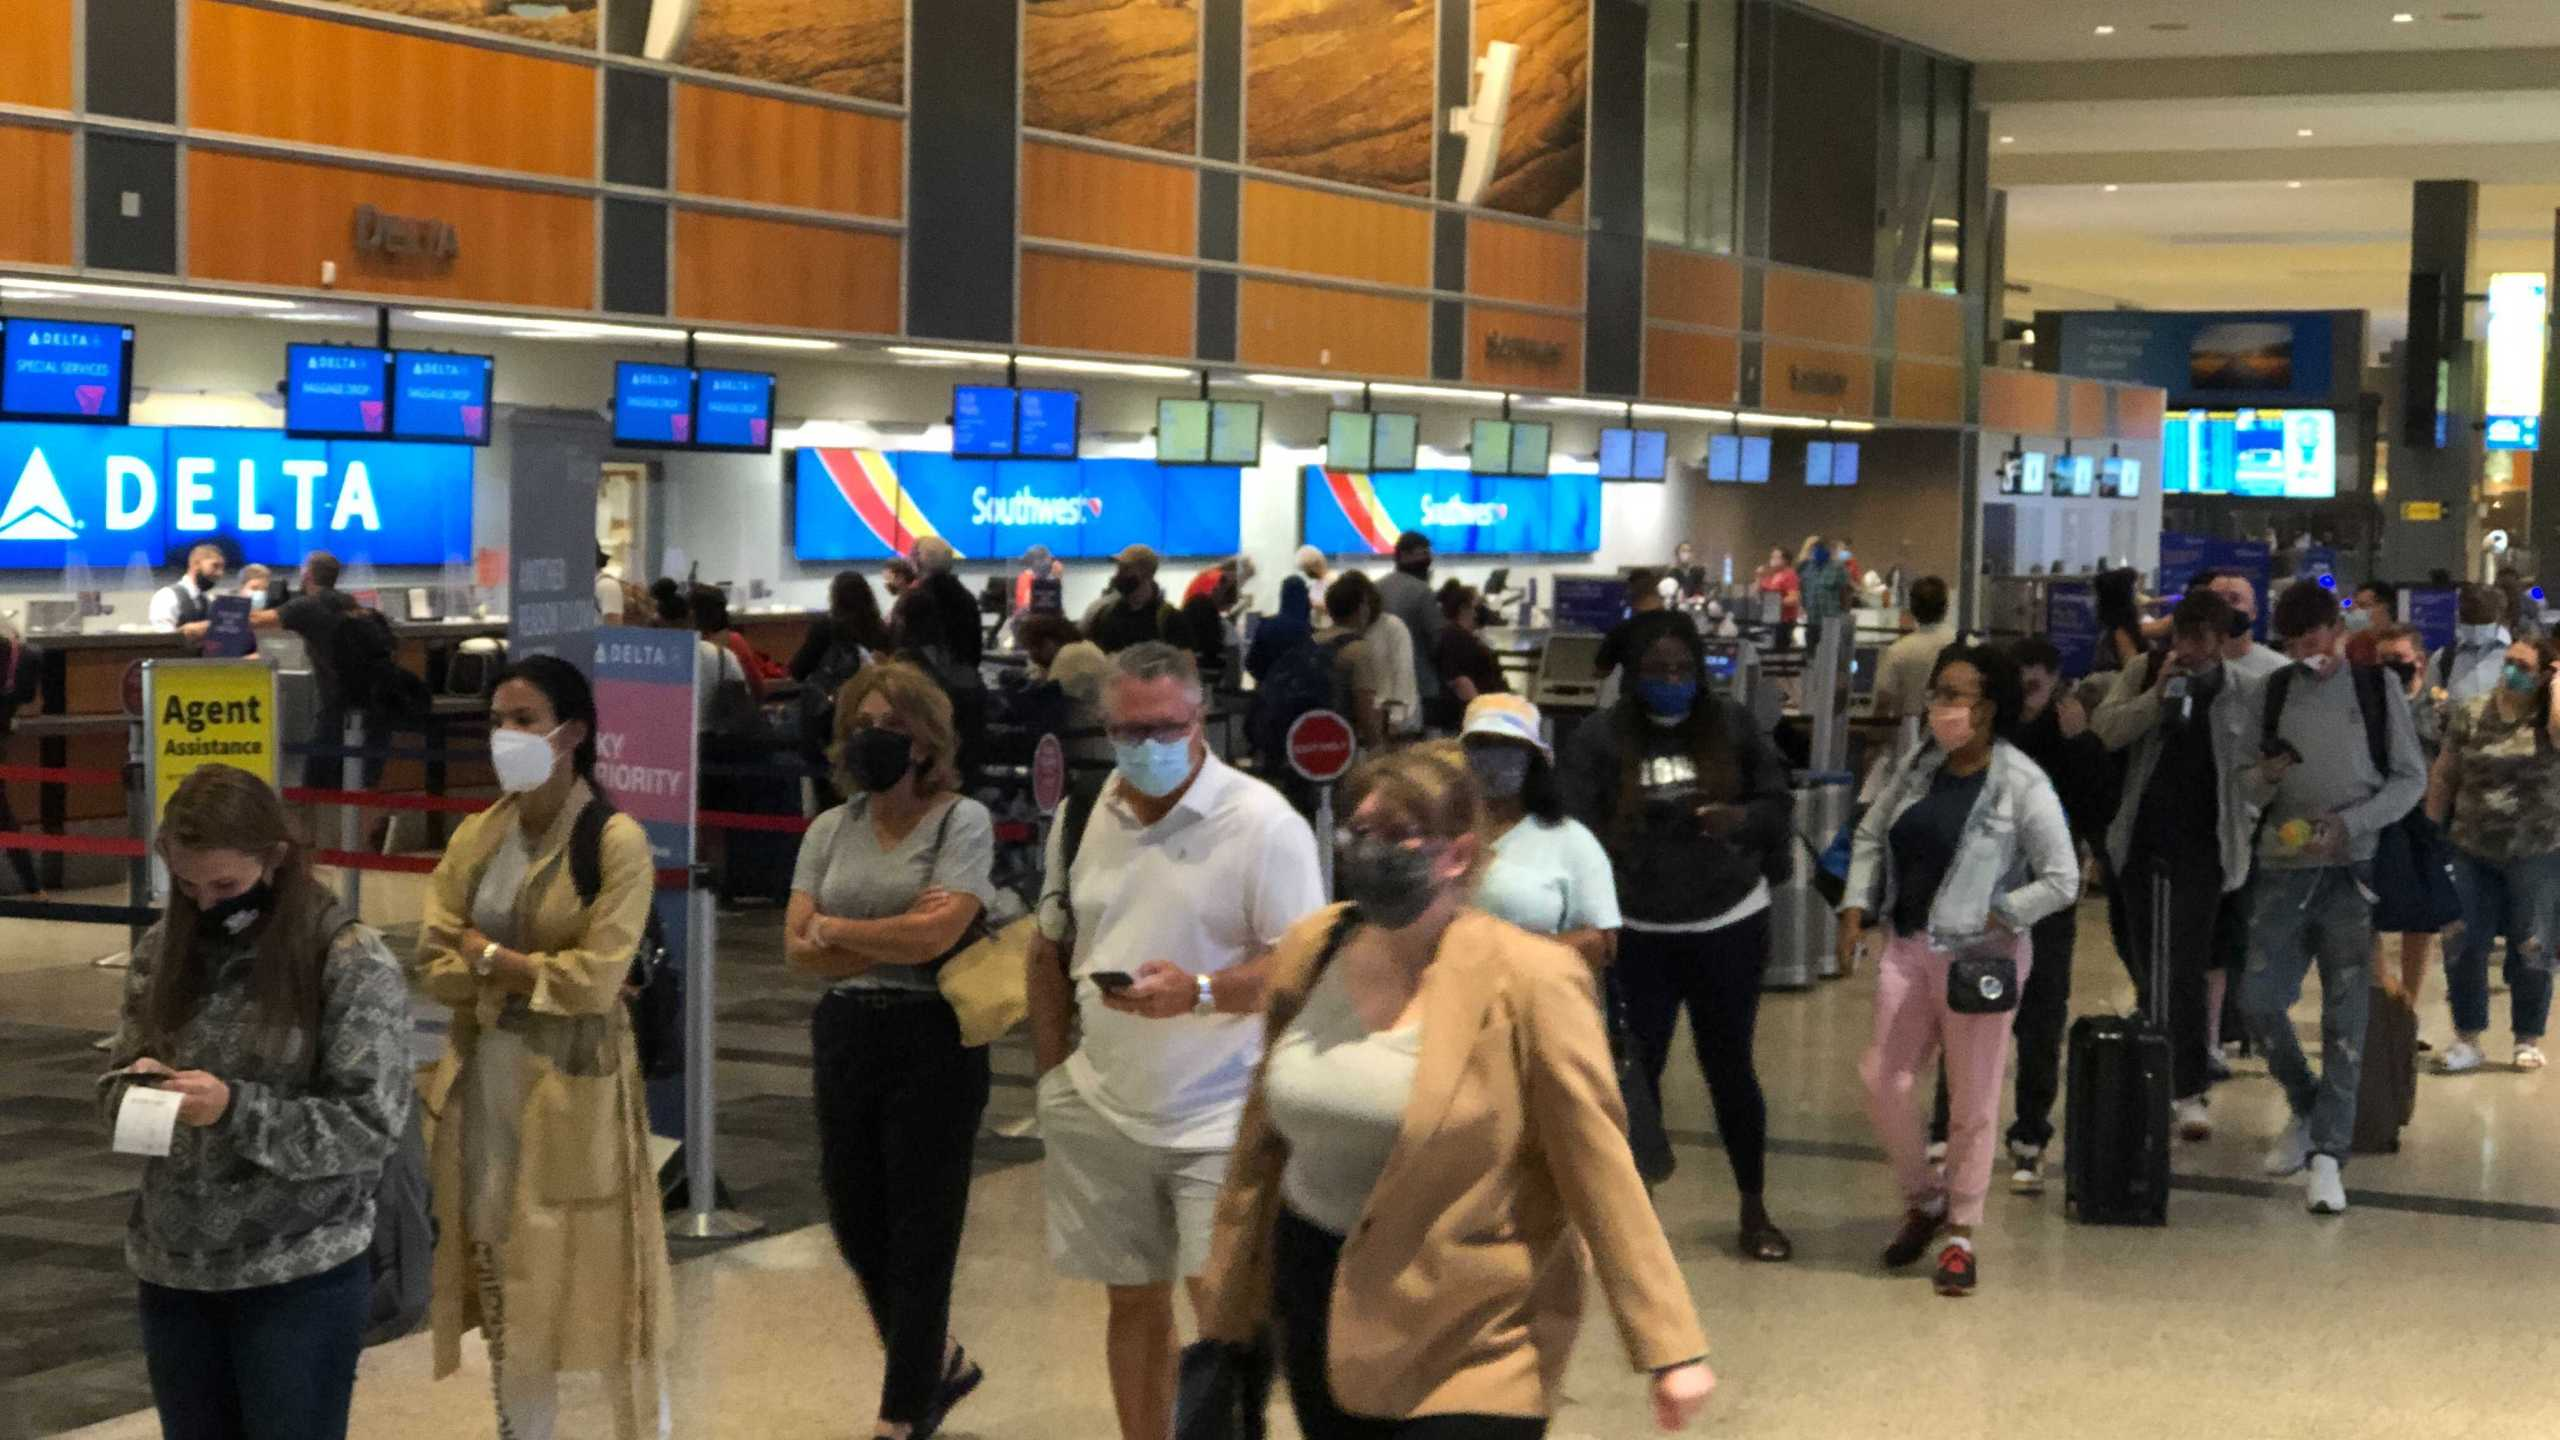 Austin-Bergstrom International Airport was busy again Friday morning as travelers rushed to catch flights. (KXAN photo/Julie Karam)